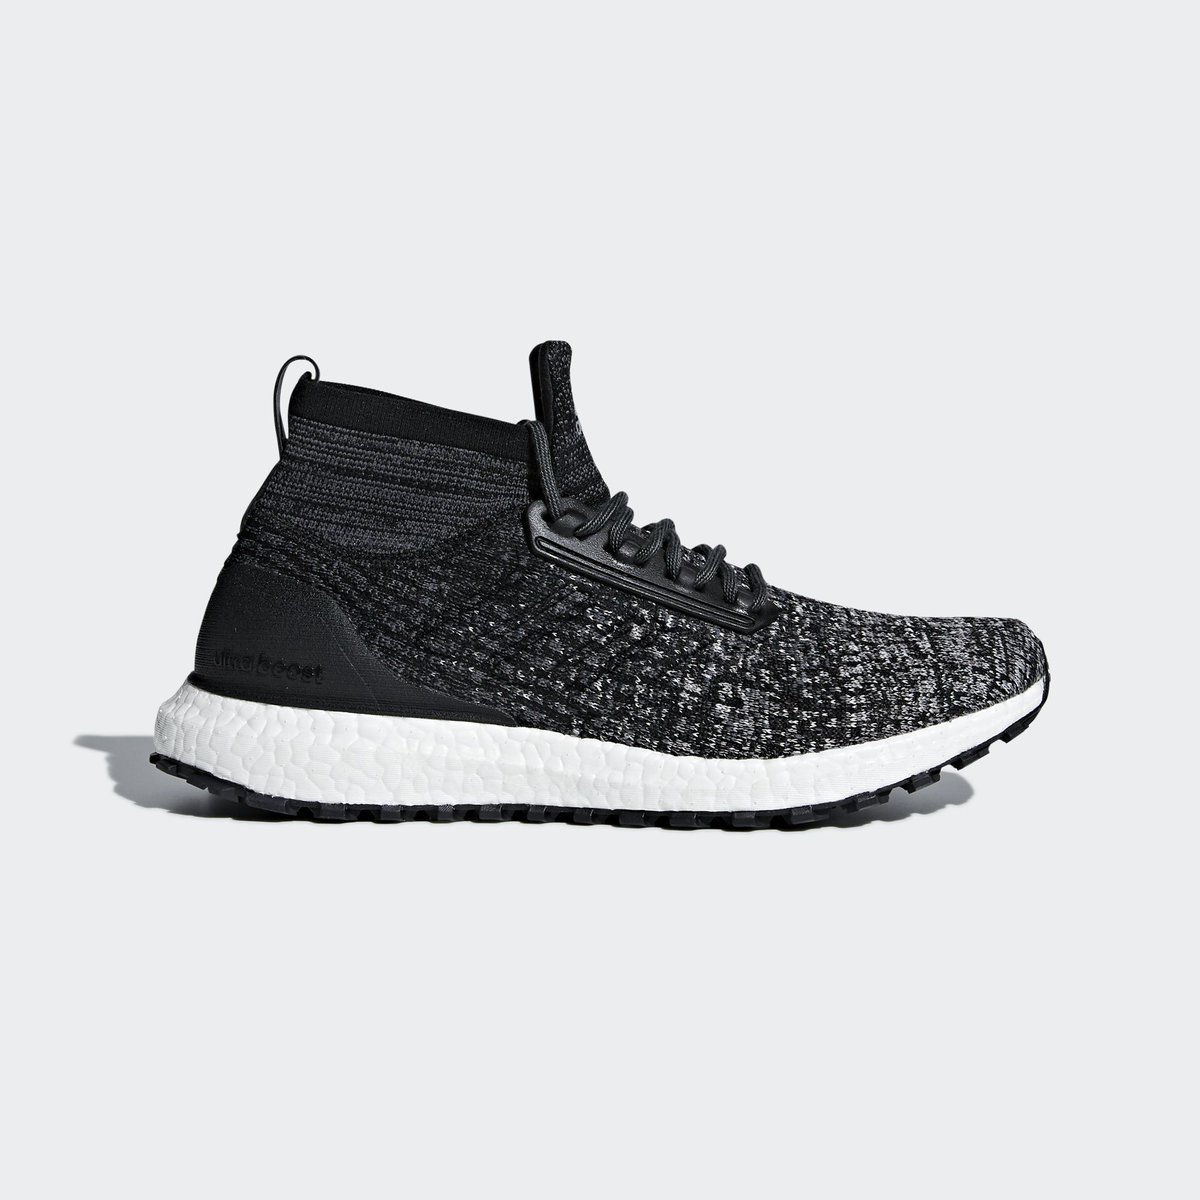 3adc7dd8a55 UltraBOOST ATR x Reigning Champ 14th February Very Limited Cop or Drop   pic.twitter.com 0xRF38hGZh. 9 10 AM - 22 Jan 2018